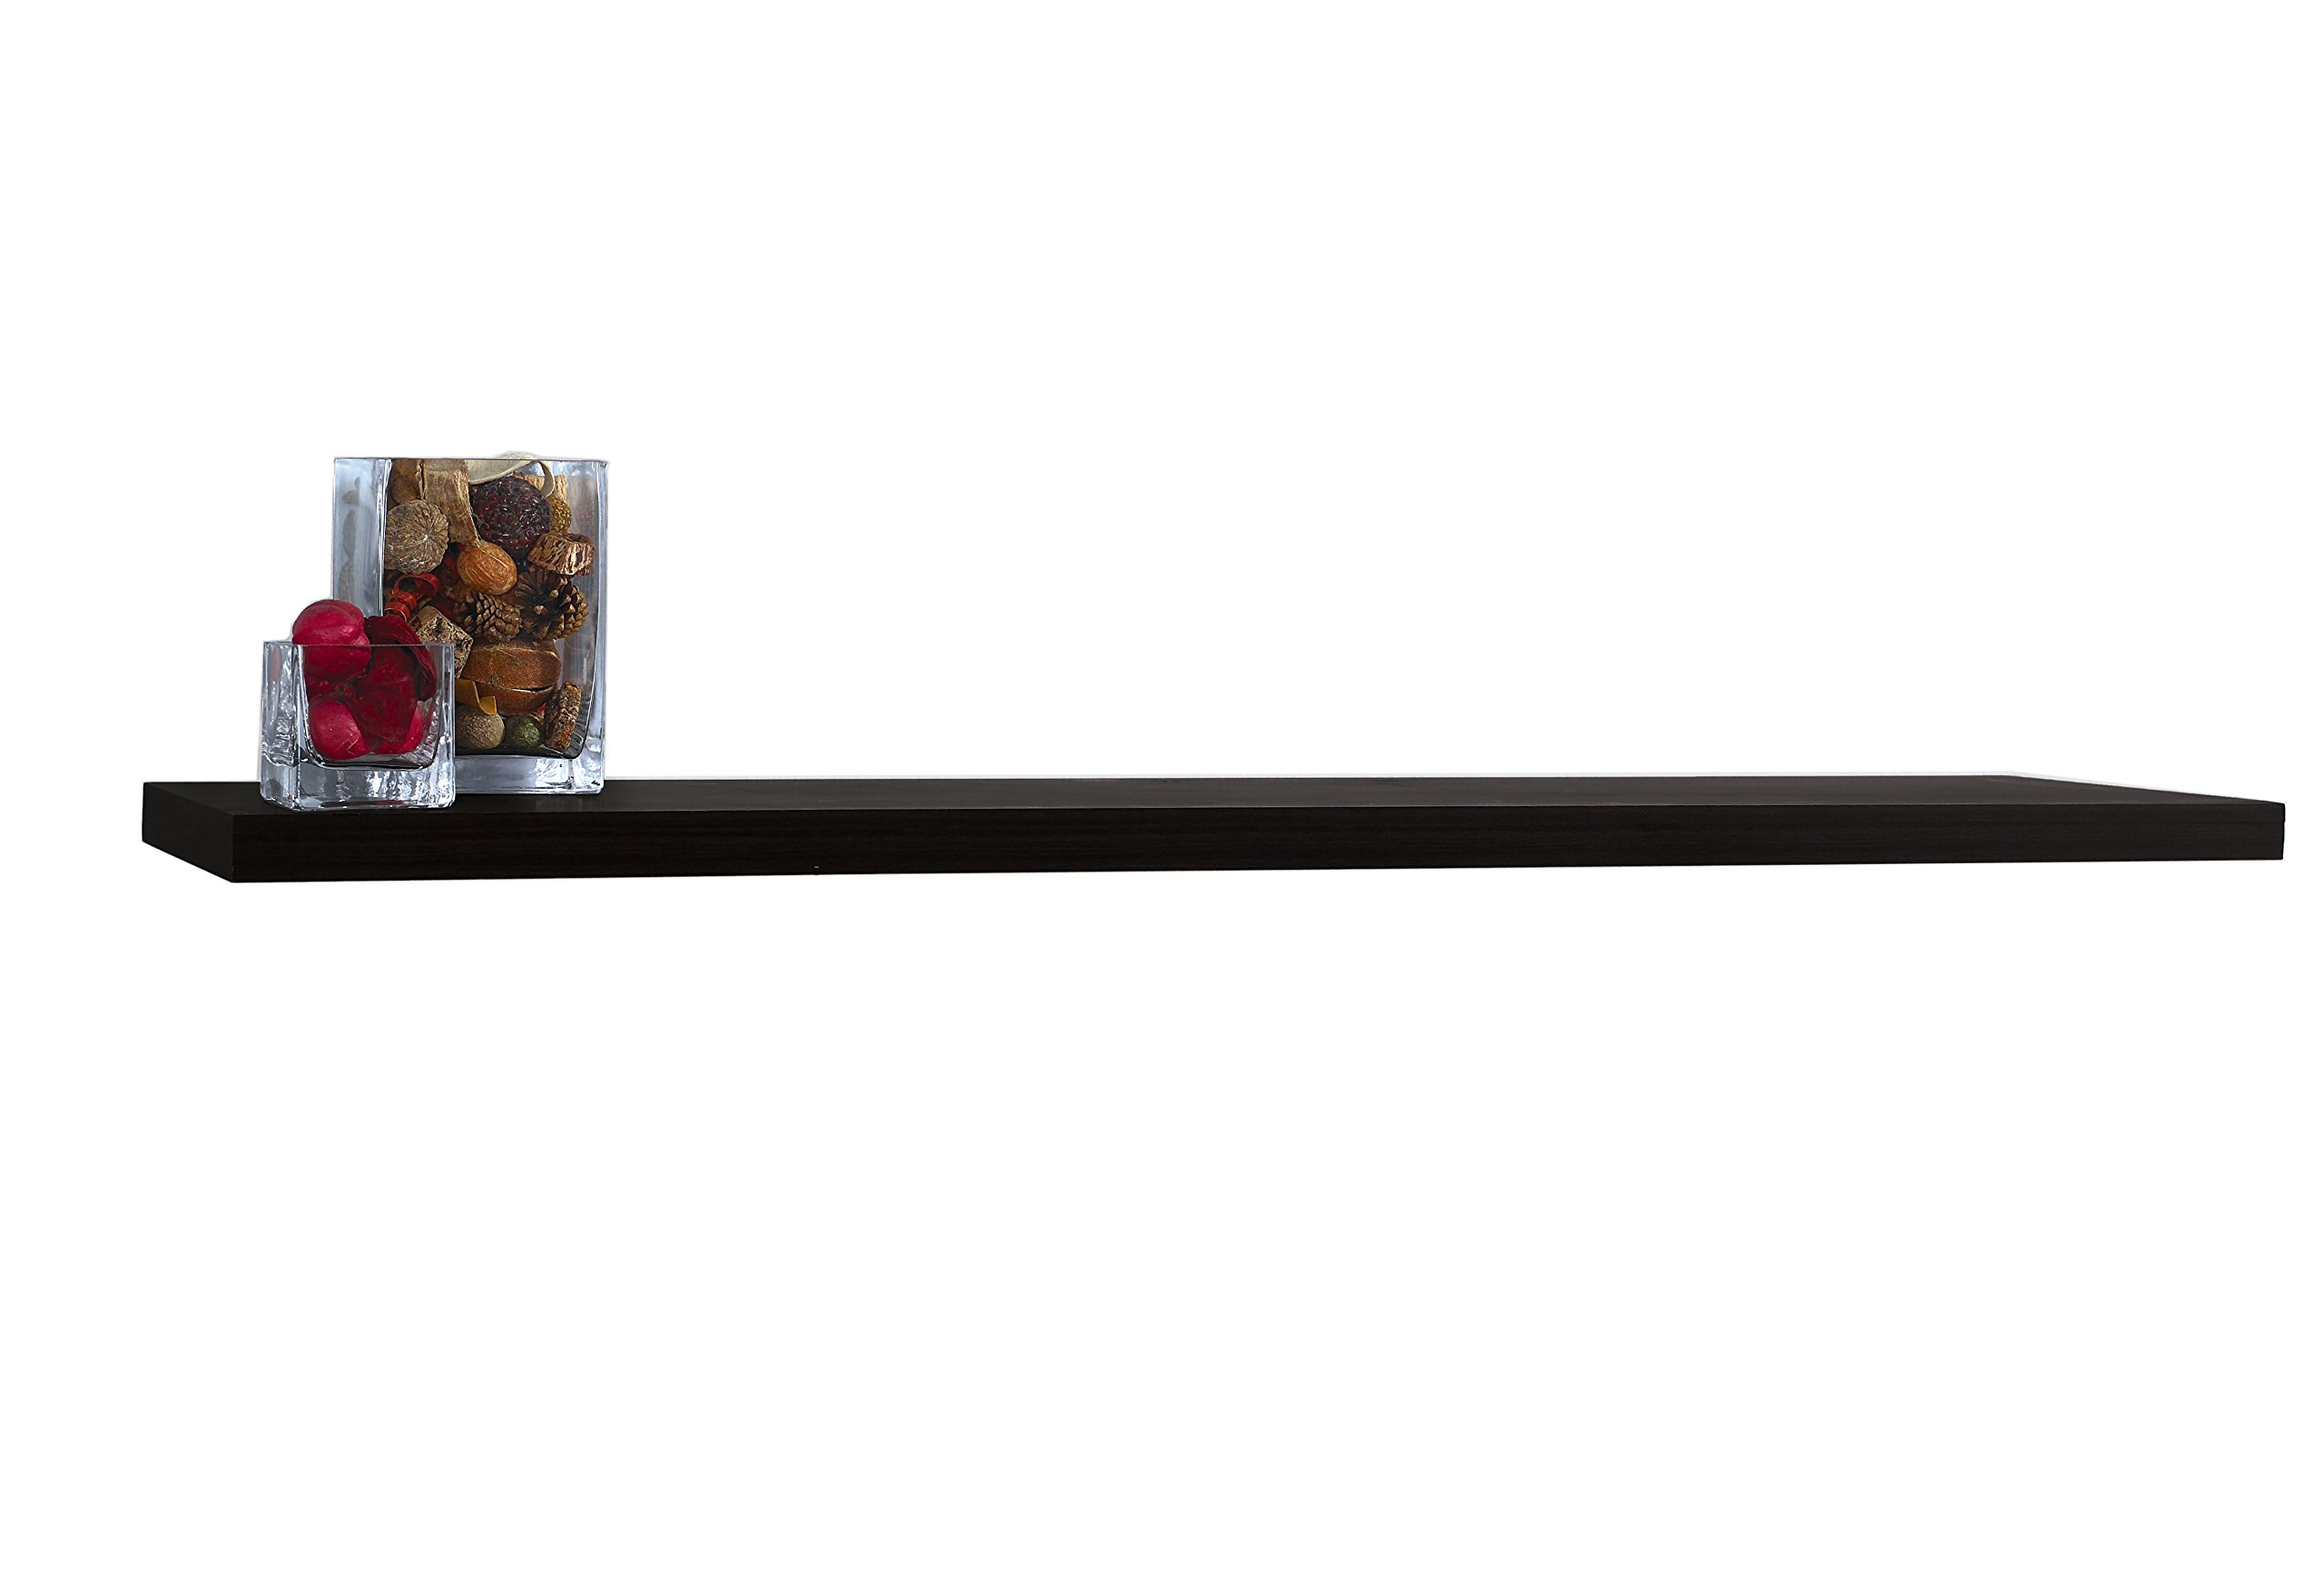 InPlace Shelving 9084674 Slimline Floating Wall Mountable Shelf with Invisible Brackets, Black, 48-Inch Wide by 8-Inch Deep by 1.25-Inch High by Lewis Hyman